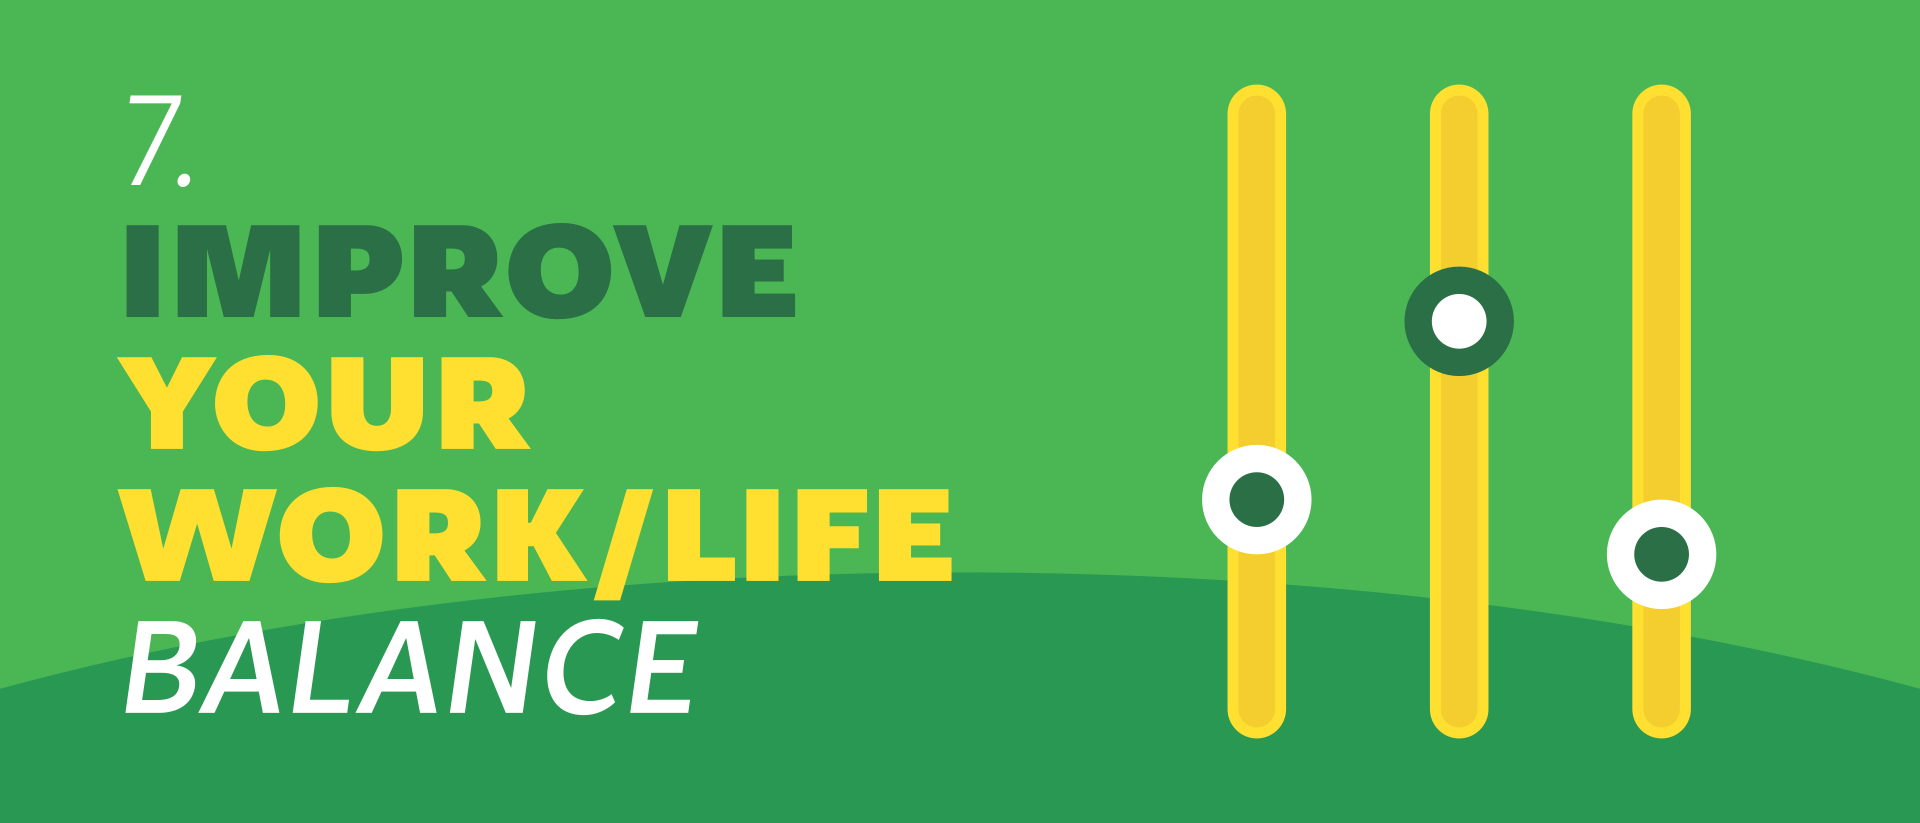 Improve your work/life balance